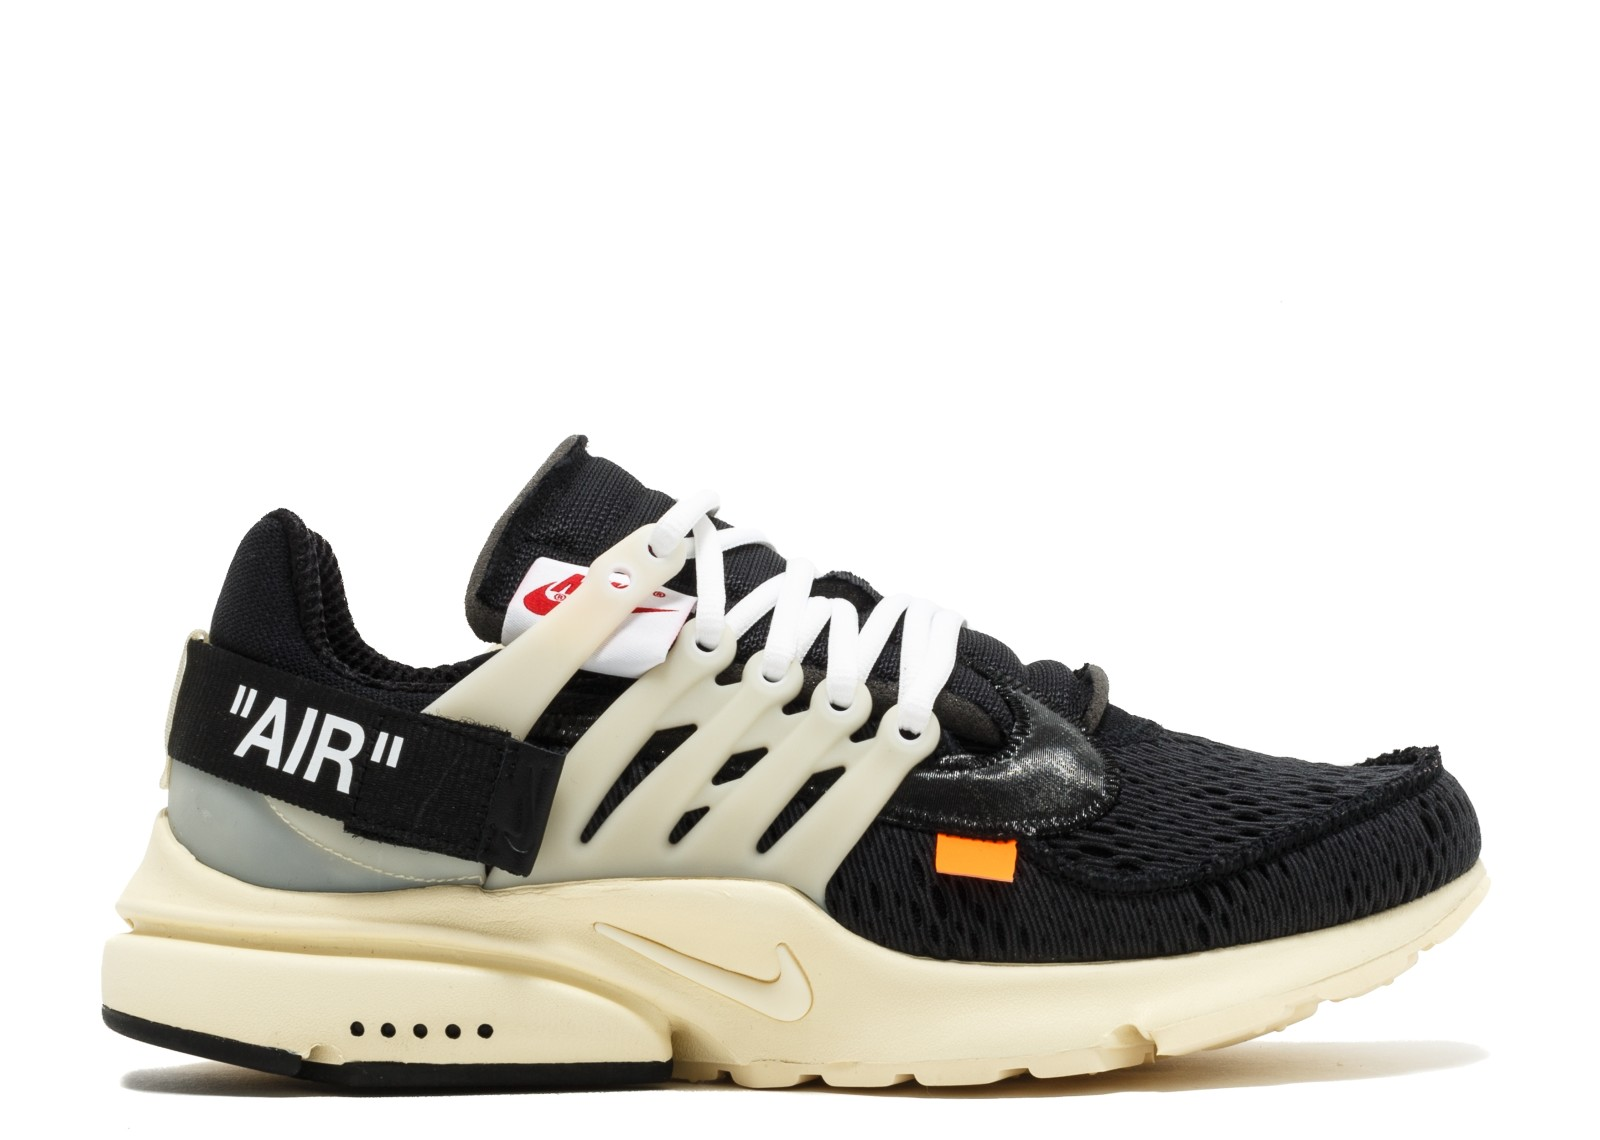 Nike - Men - The 10: Nike Air Presto 'Off White' - Aa3830-001 - Size 13